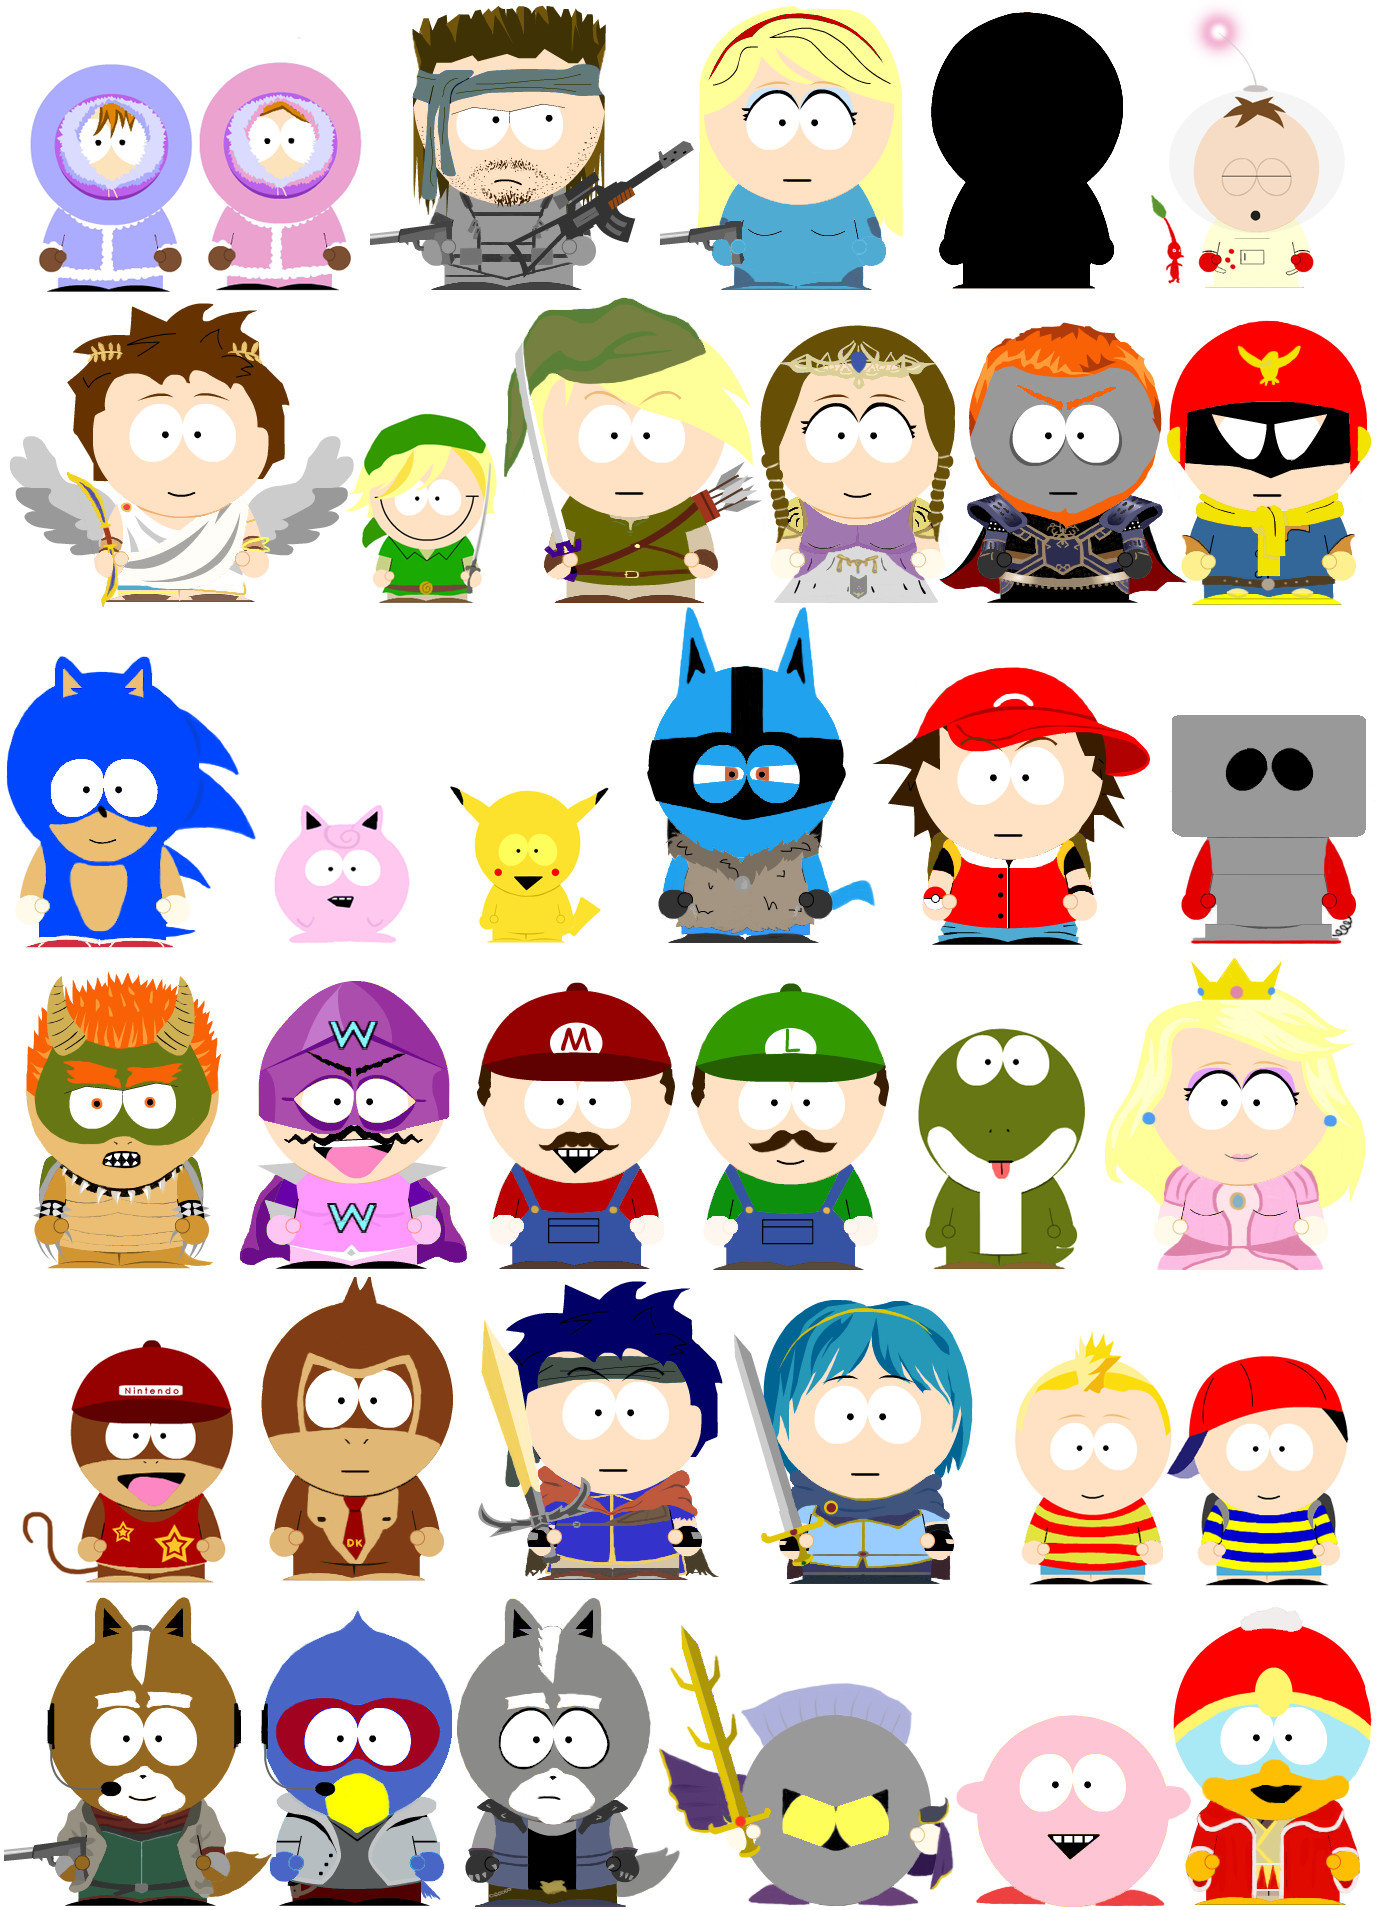 Super smash bros clipart picture royalty free stock Smash bros brawl clipart - ClipartFox picture royalty free stock